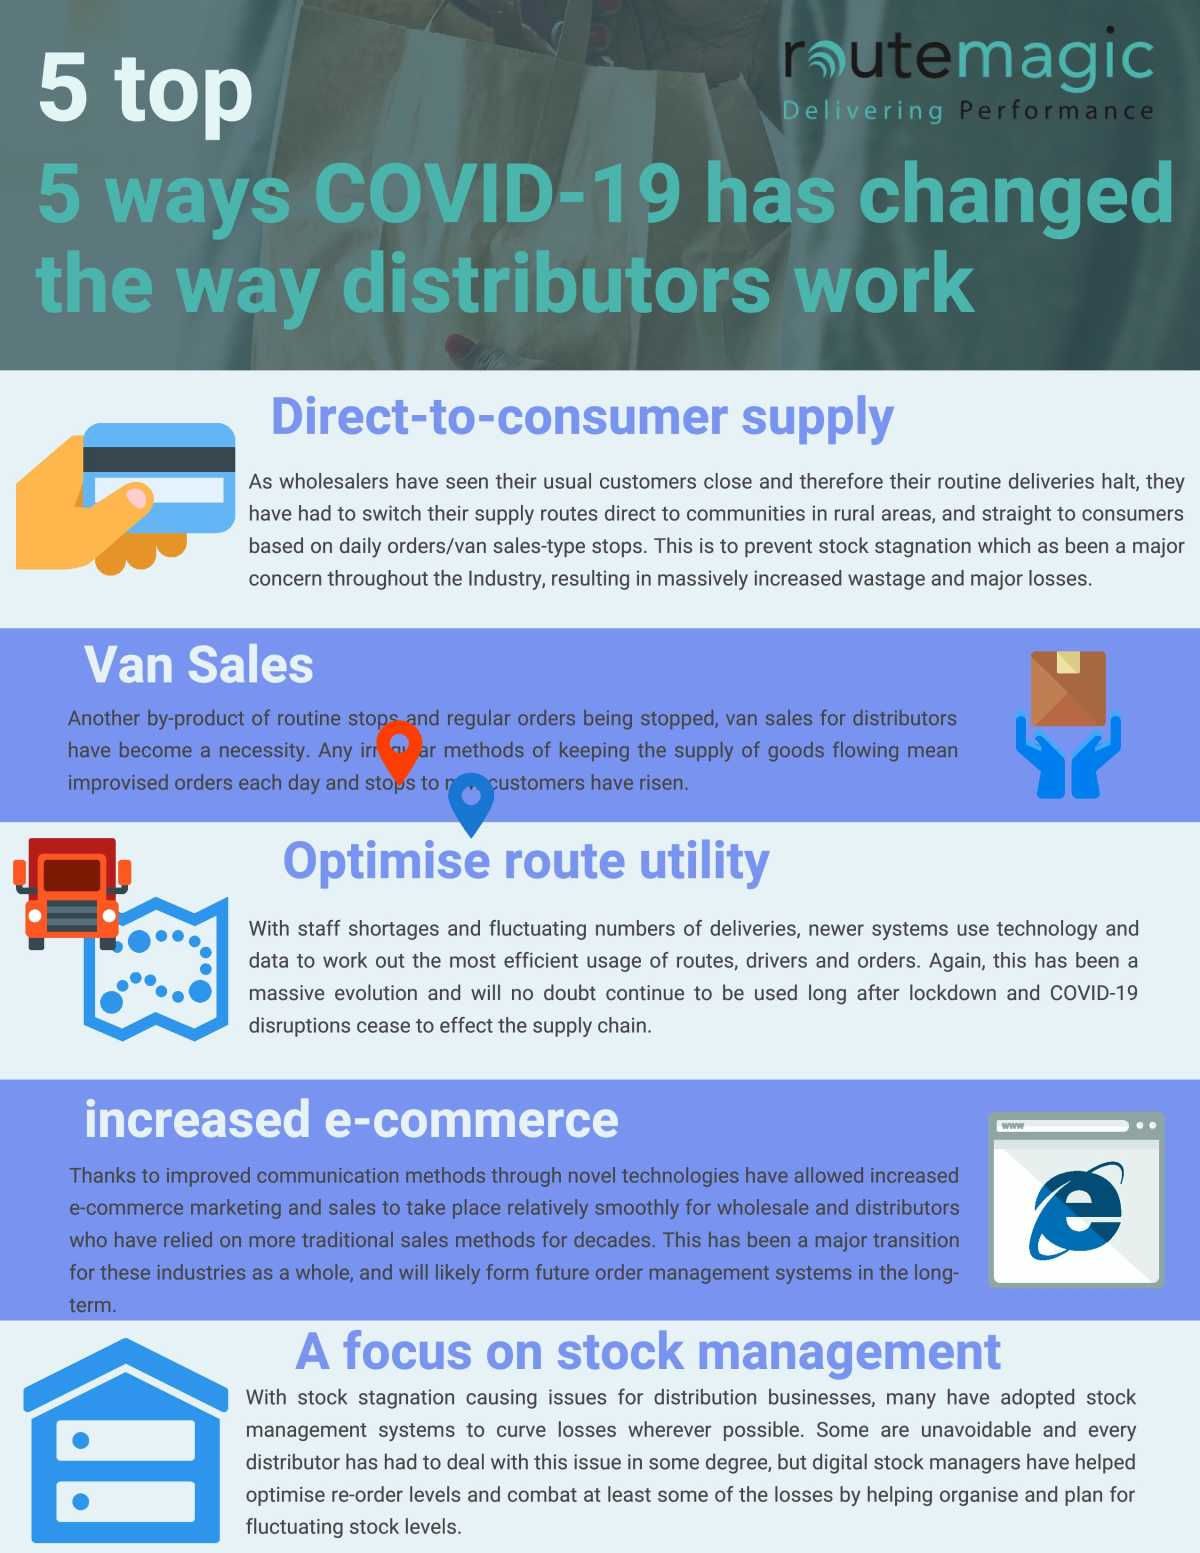 5 ways Covid-19 has altered the way distributors work